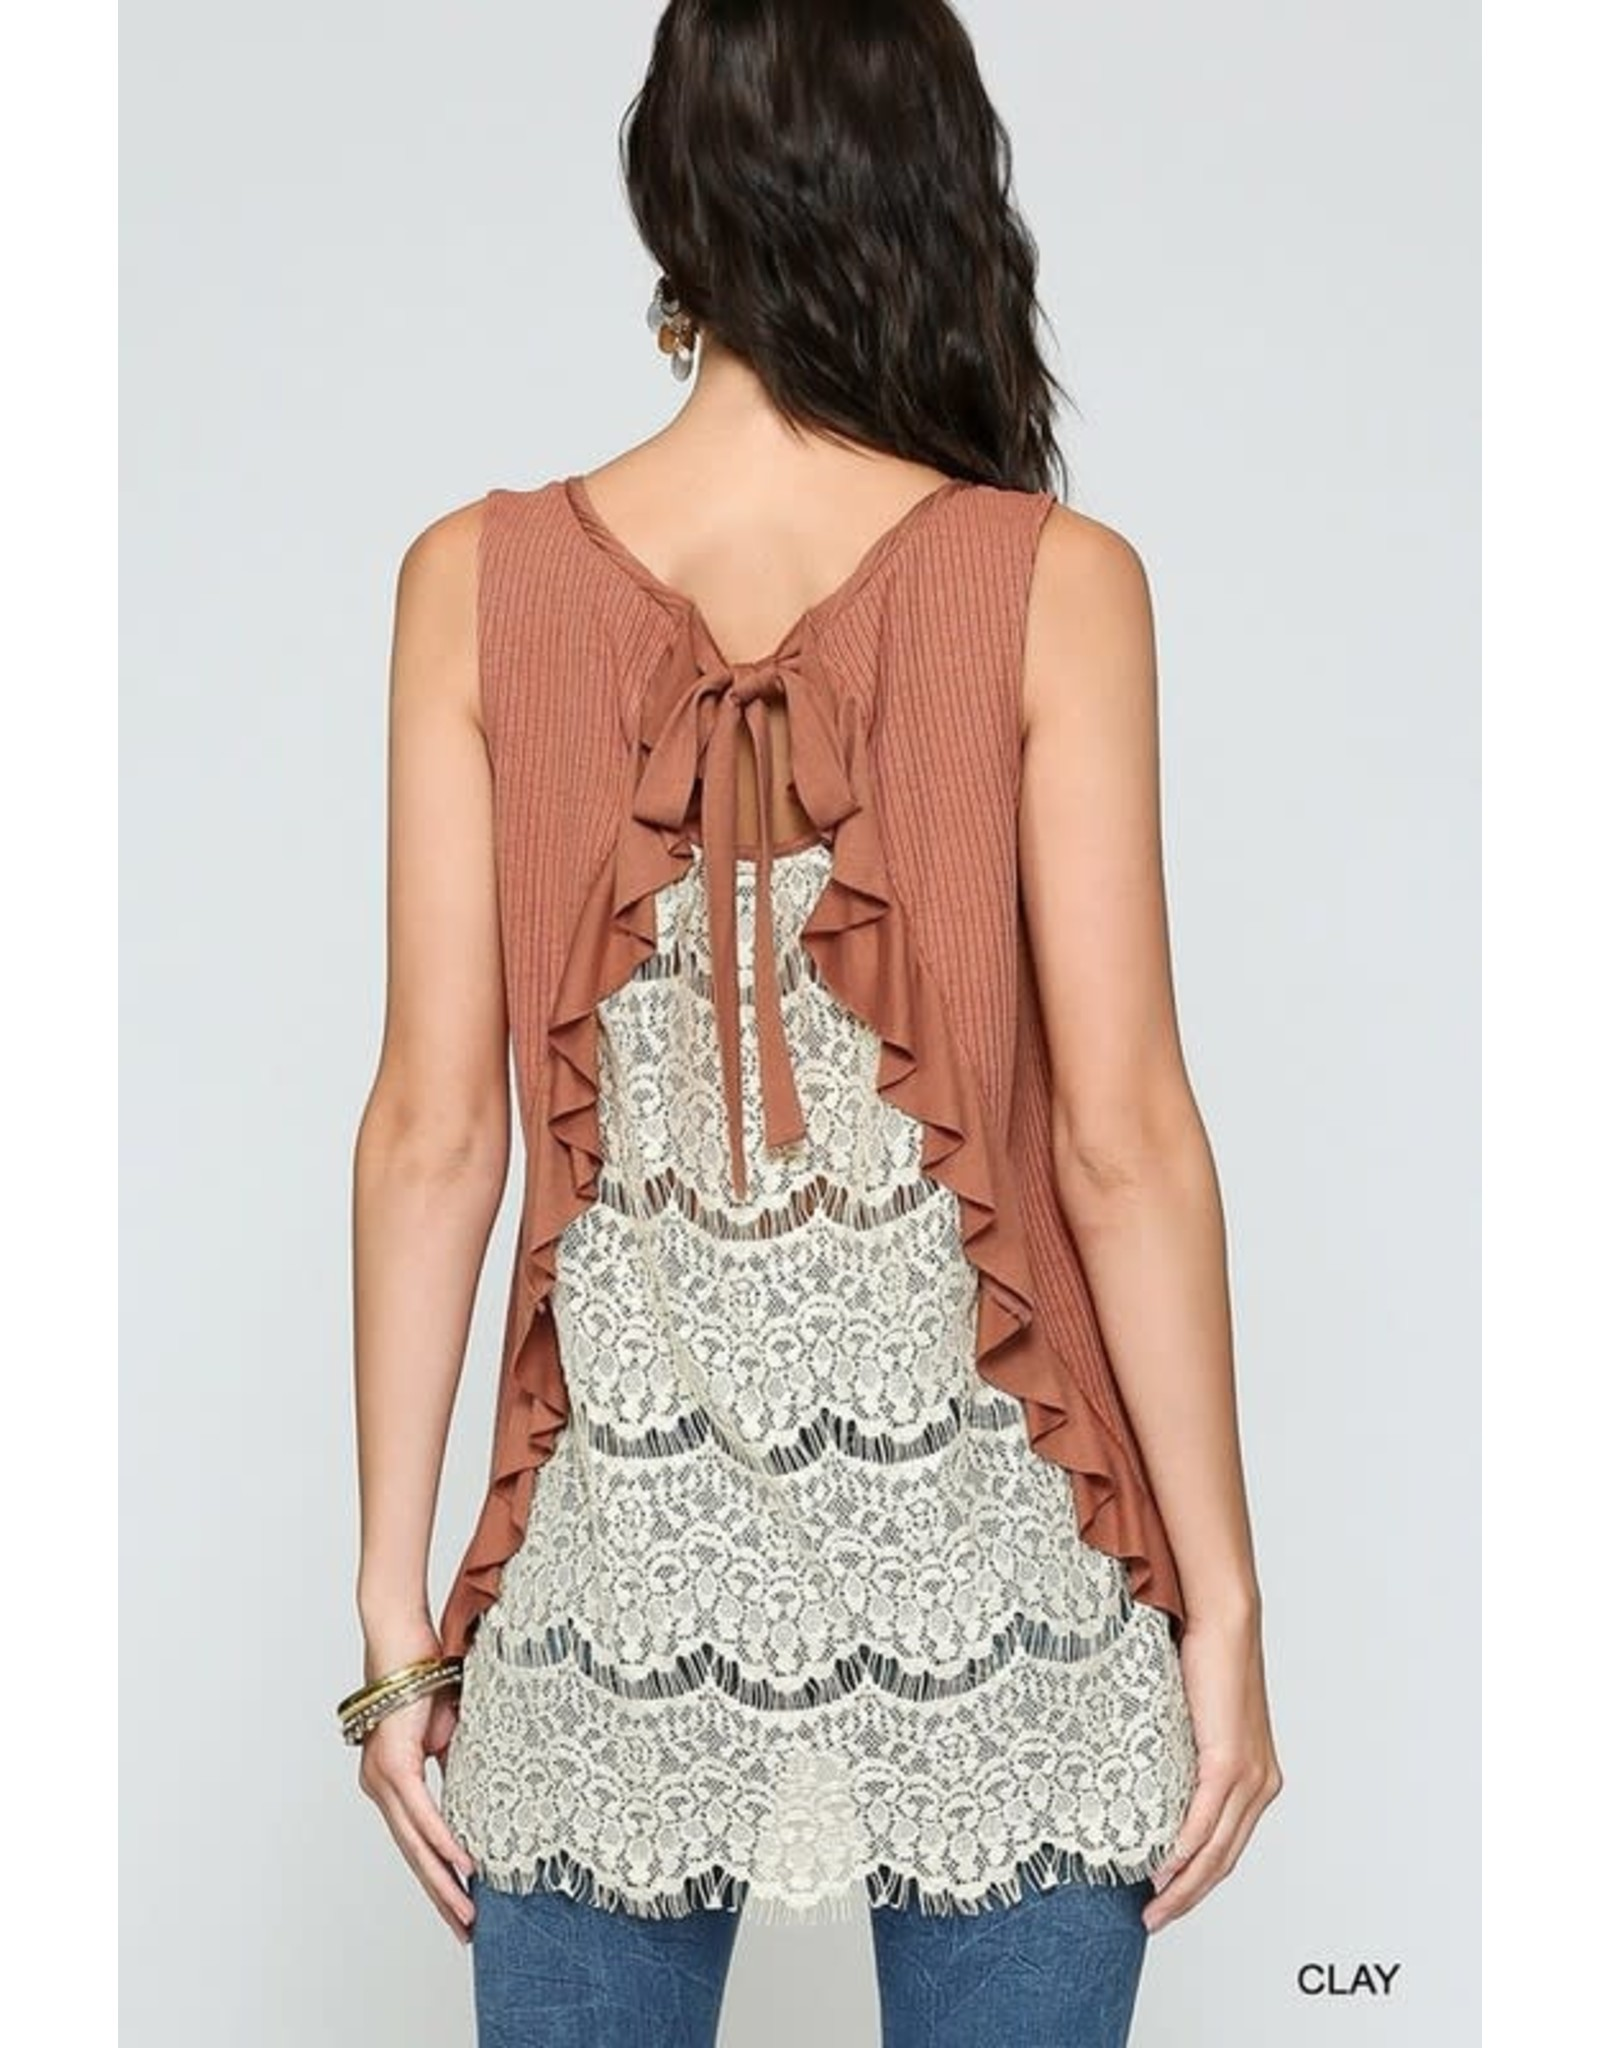 GIGIO CLAY RUFFLE DETAIL LACE BACK SLEEVELESS TOP